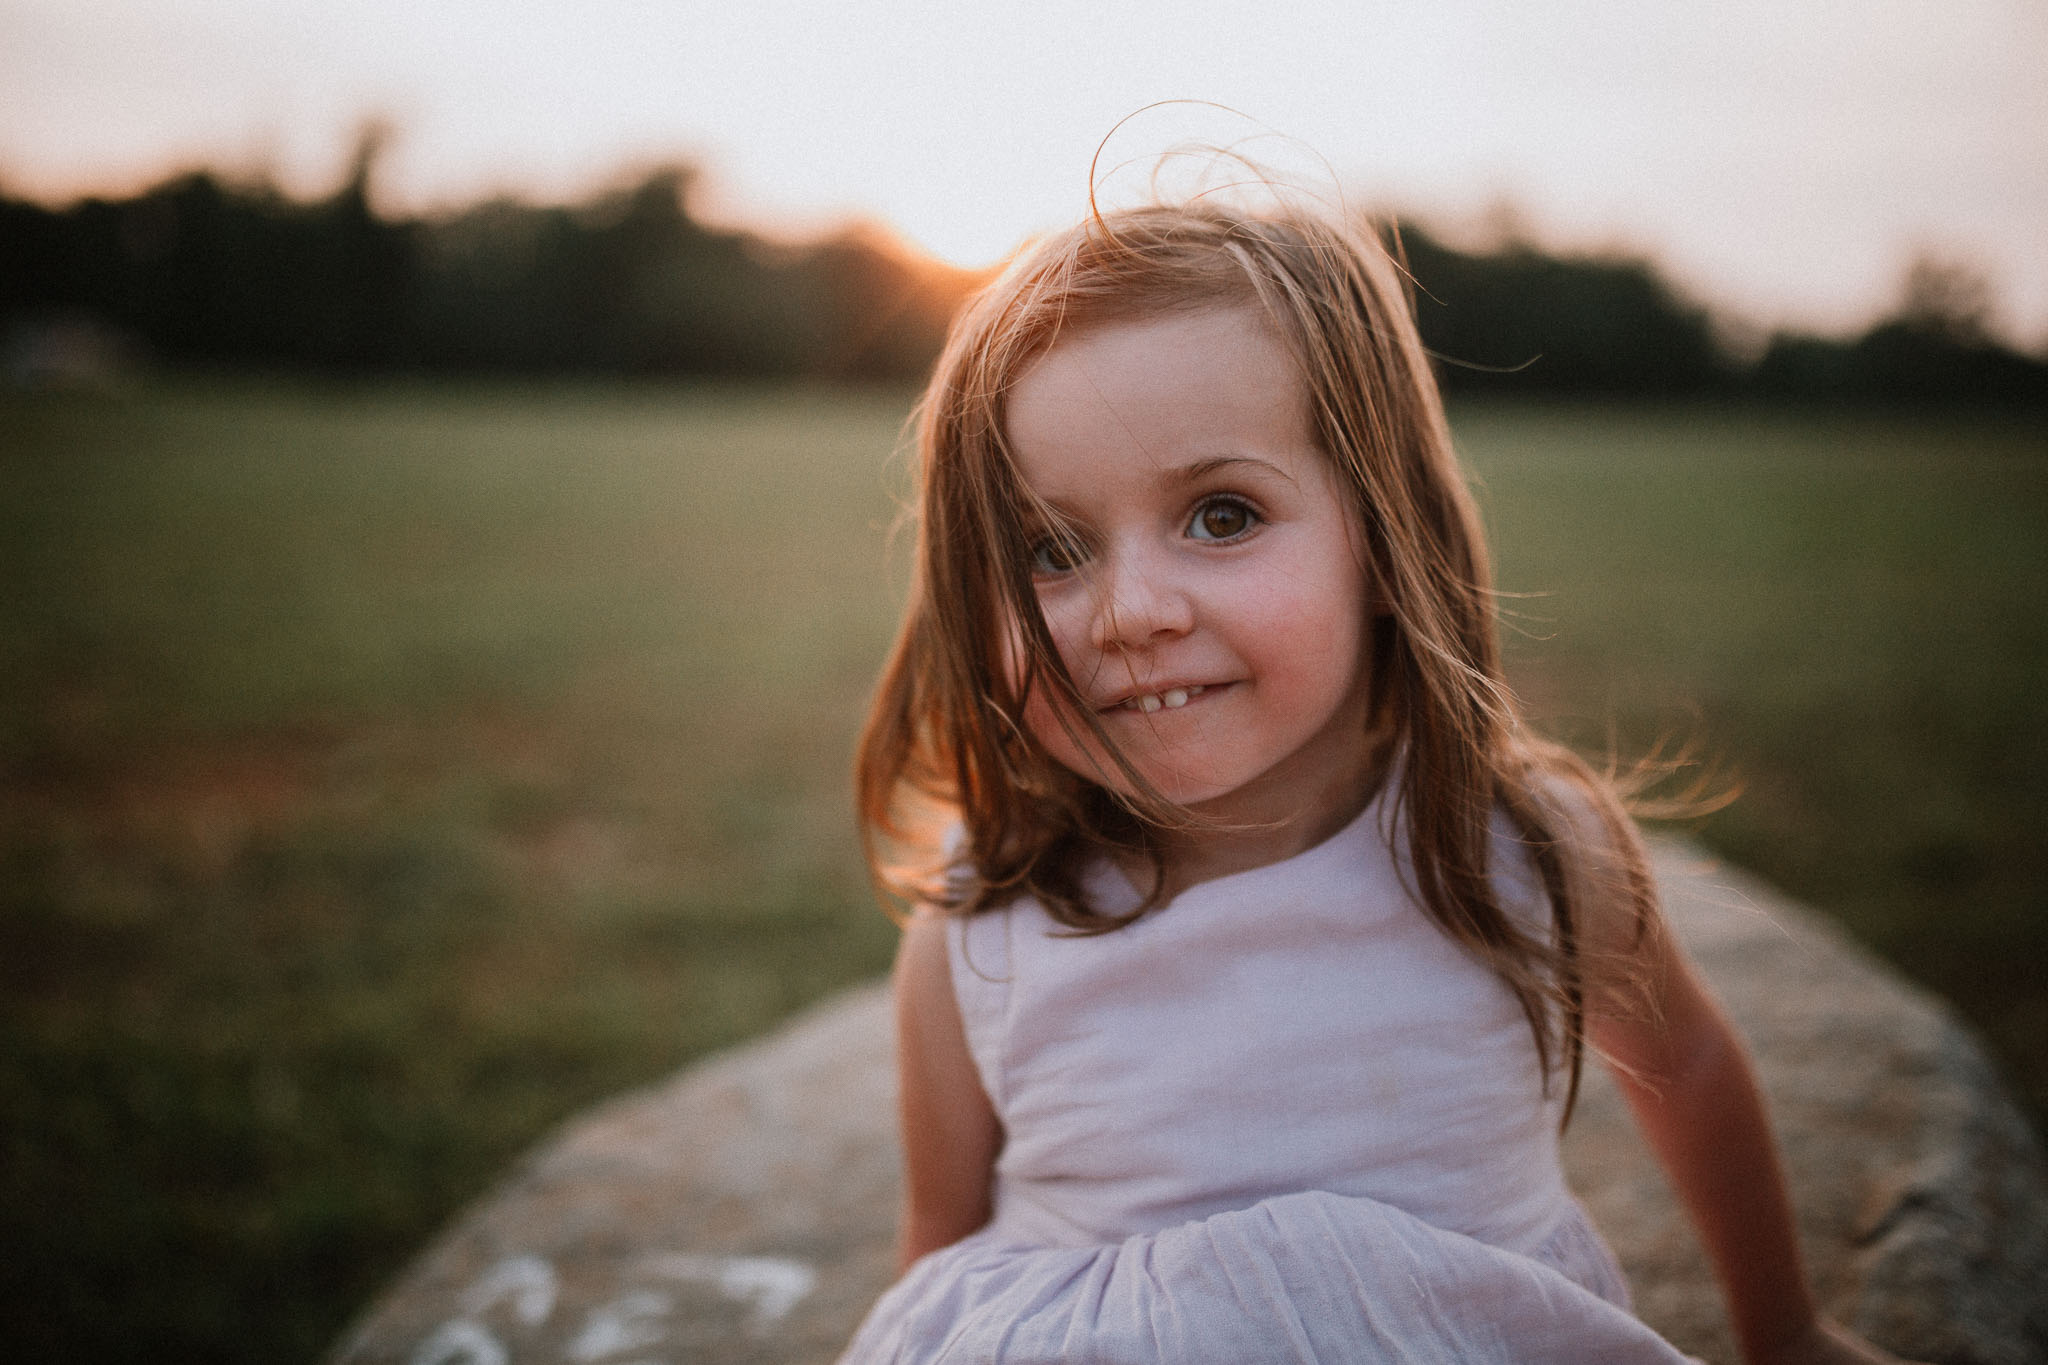 Portrait of a girl wearing a purple dress at sunset in Ashburn, Virginia